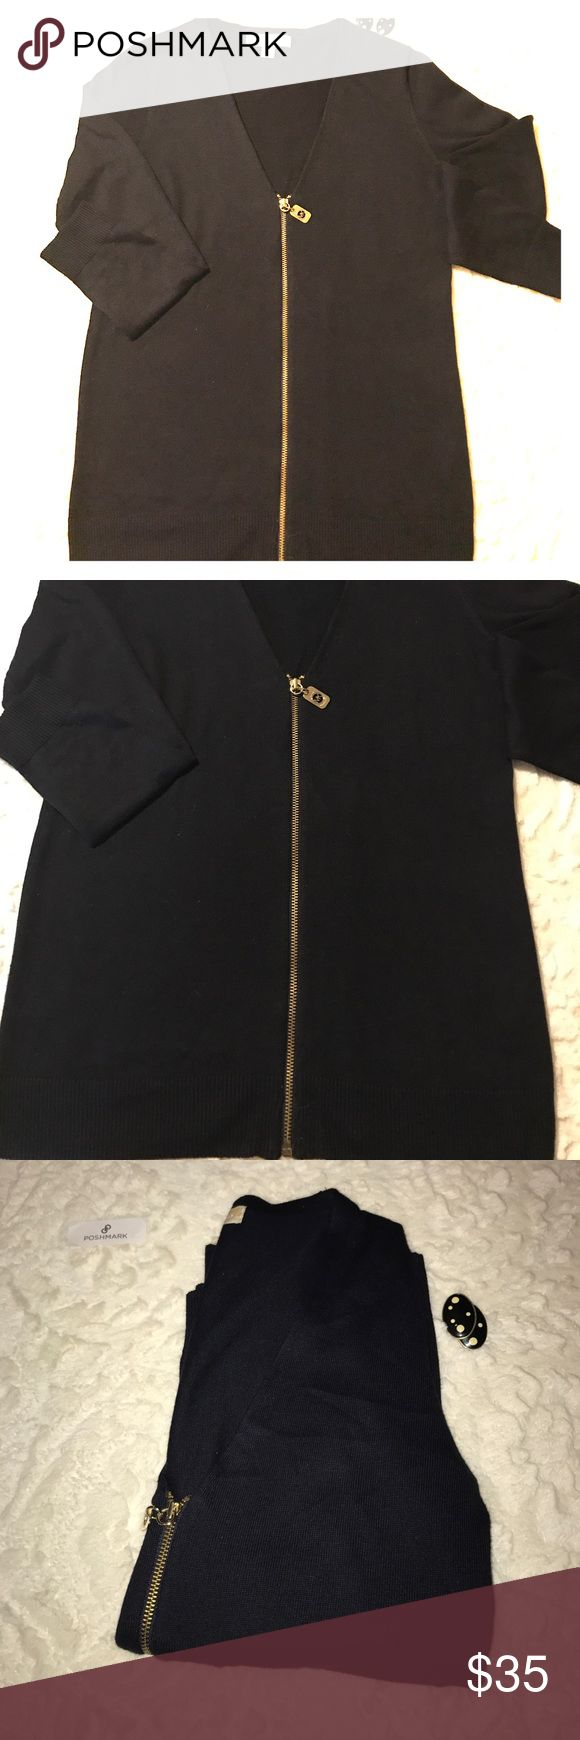 Michael Kors Blue Zip Up Cardigan Dark Blue Gold zip Up Cardigan. Photo looks black but it's a dark blue. Size Small. 52% cotton and 45% Poly Michael Kors Sweaters Cardigans